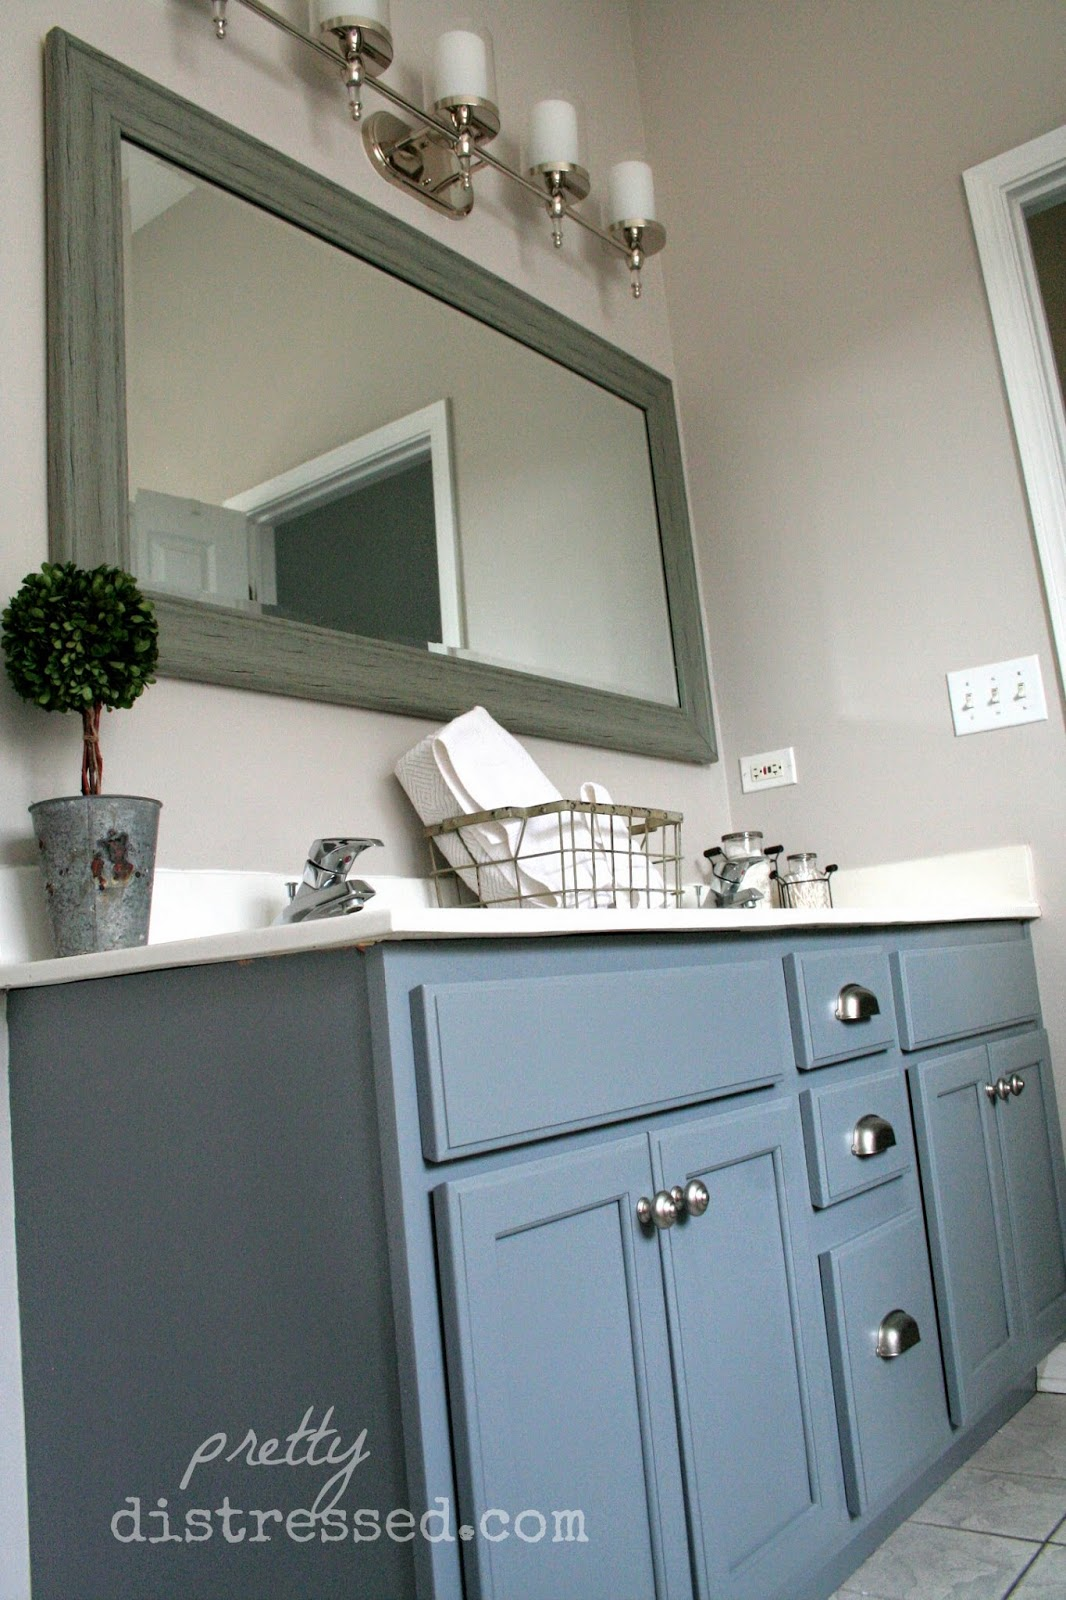 Painted Bathroom Cabinets Before And After pretty distressed: bathroom vanity makeover with latex paint